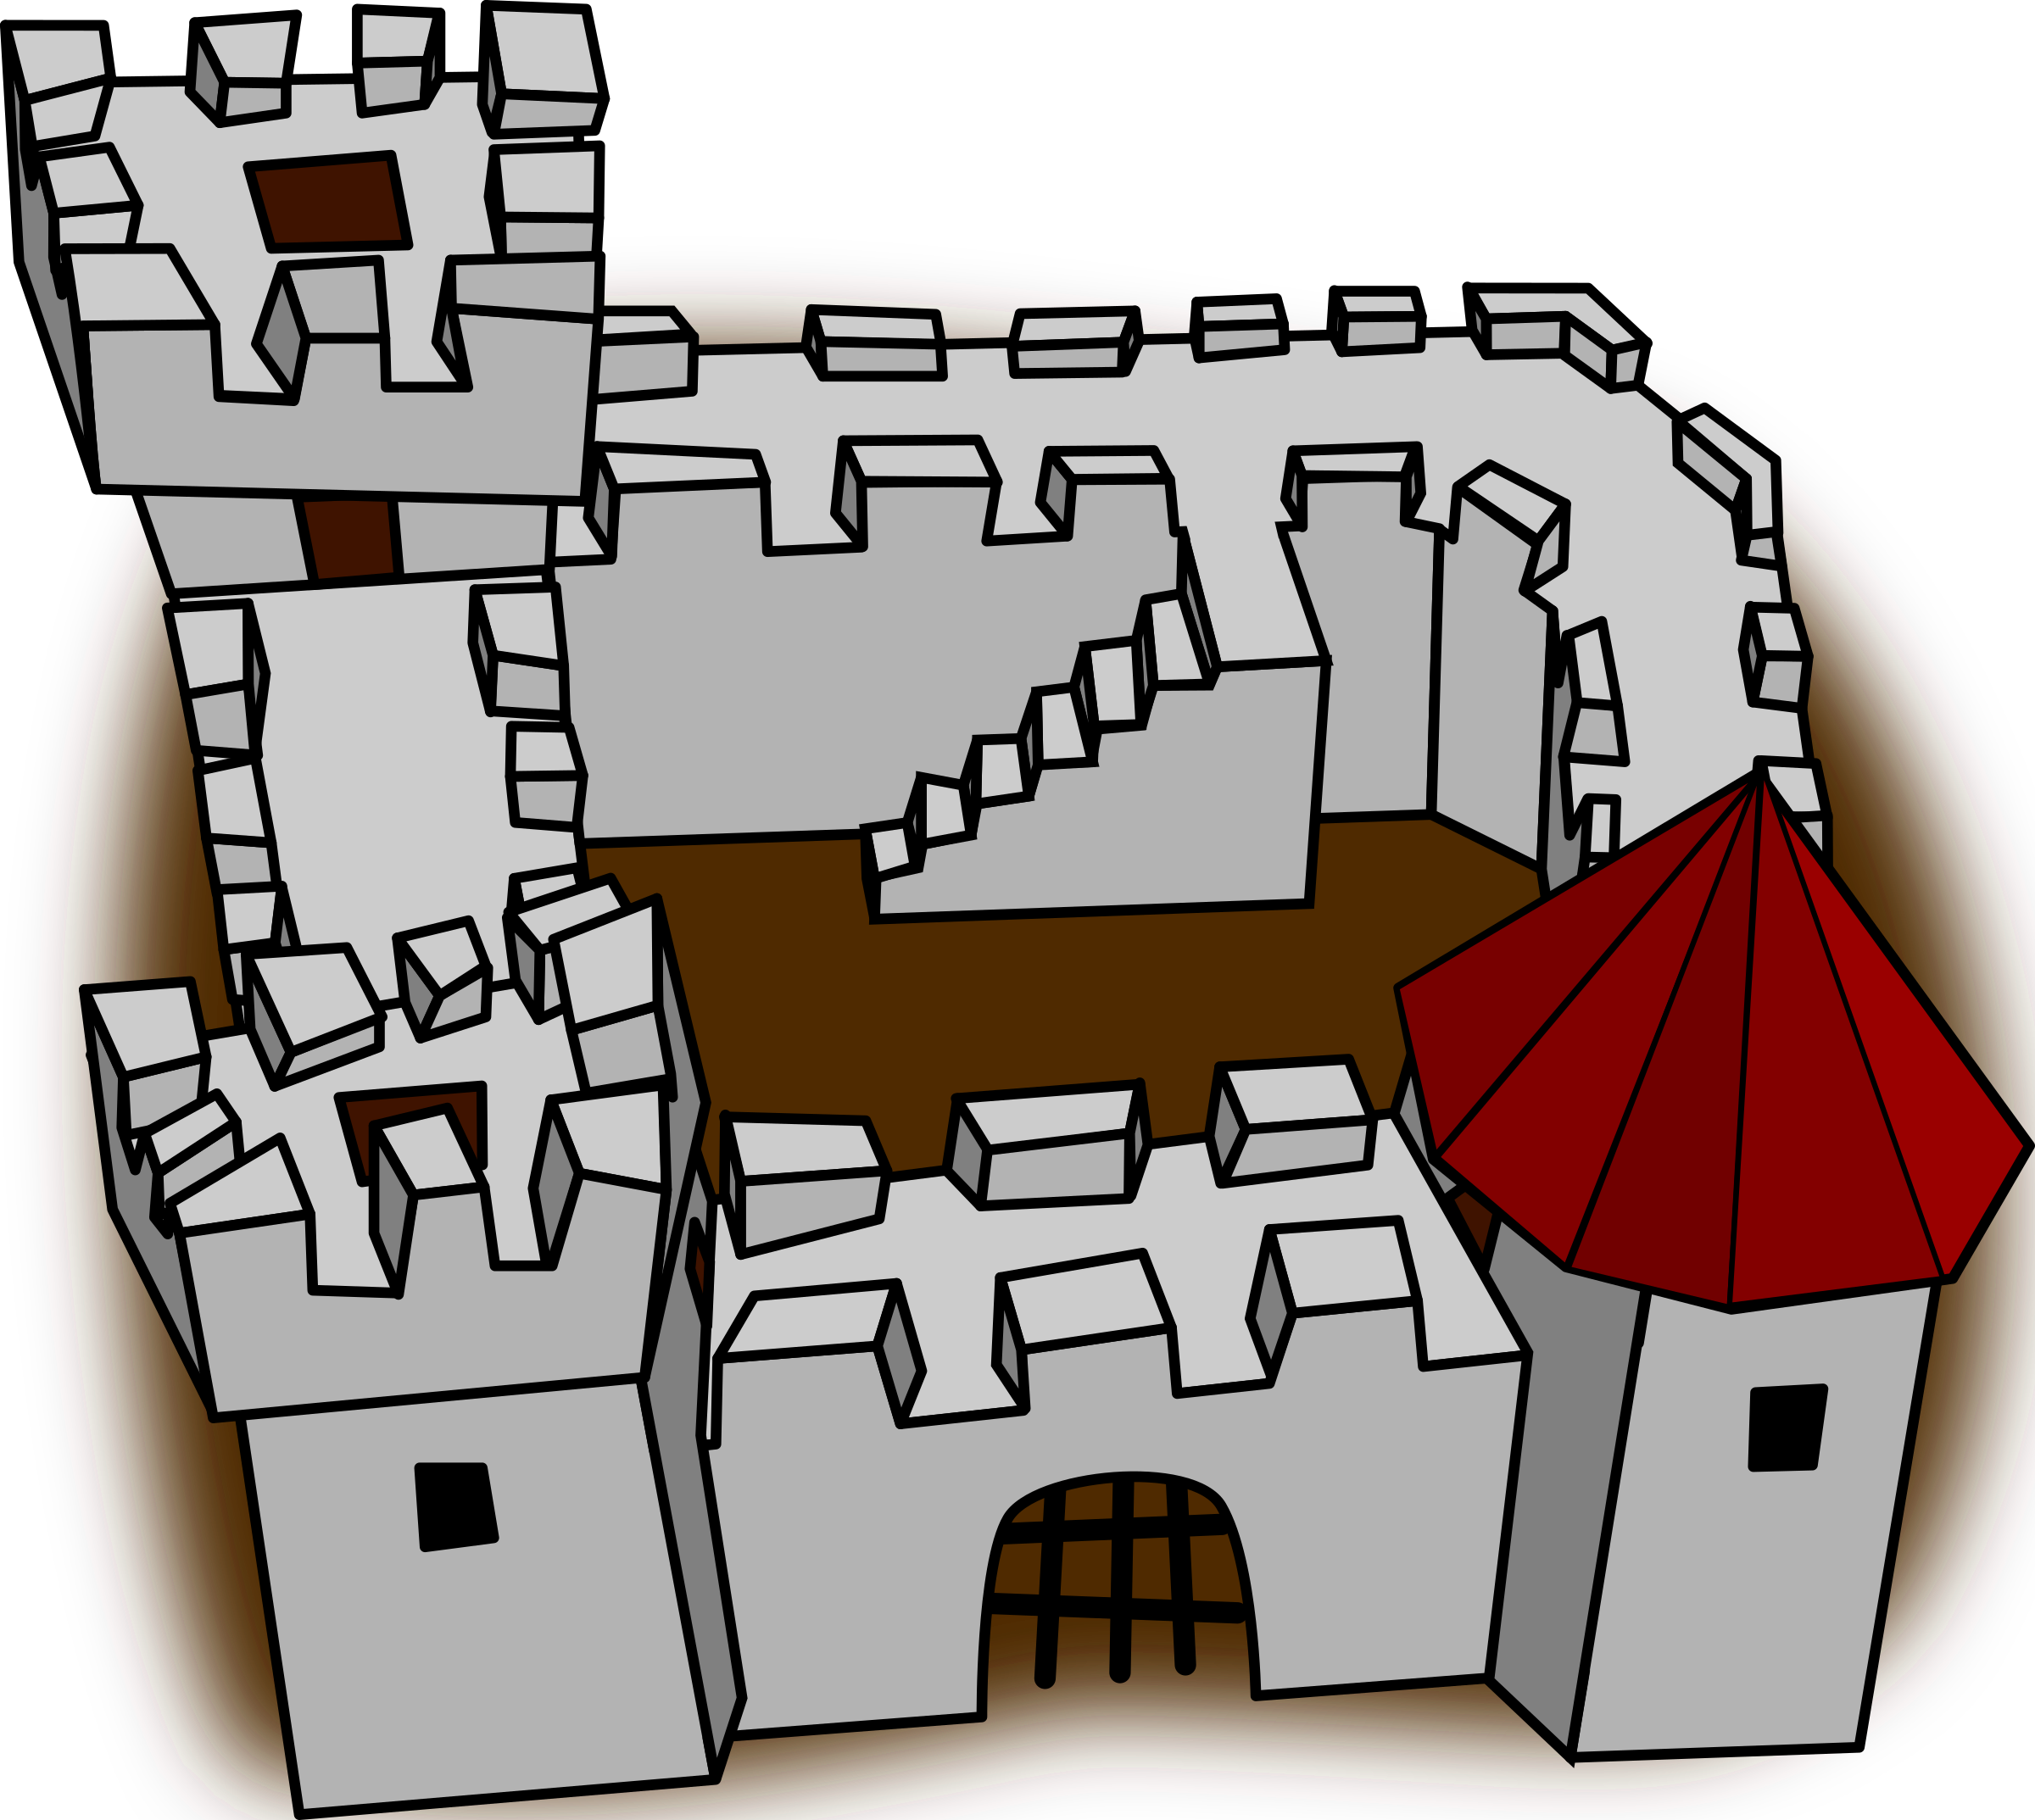 Fort drawing. Clipart cartoon comic fortress